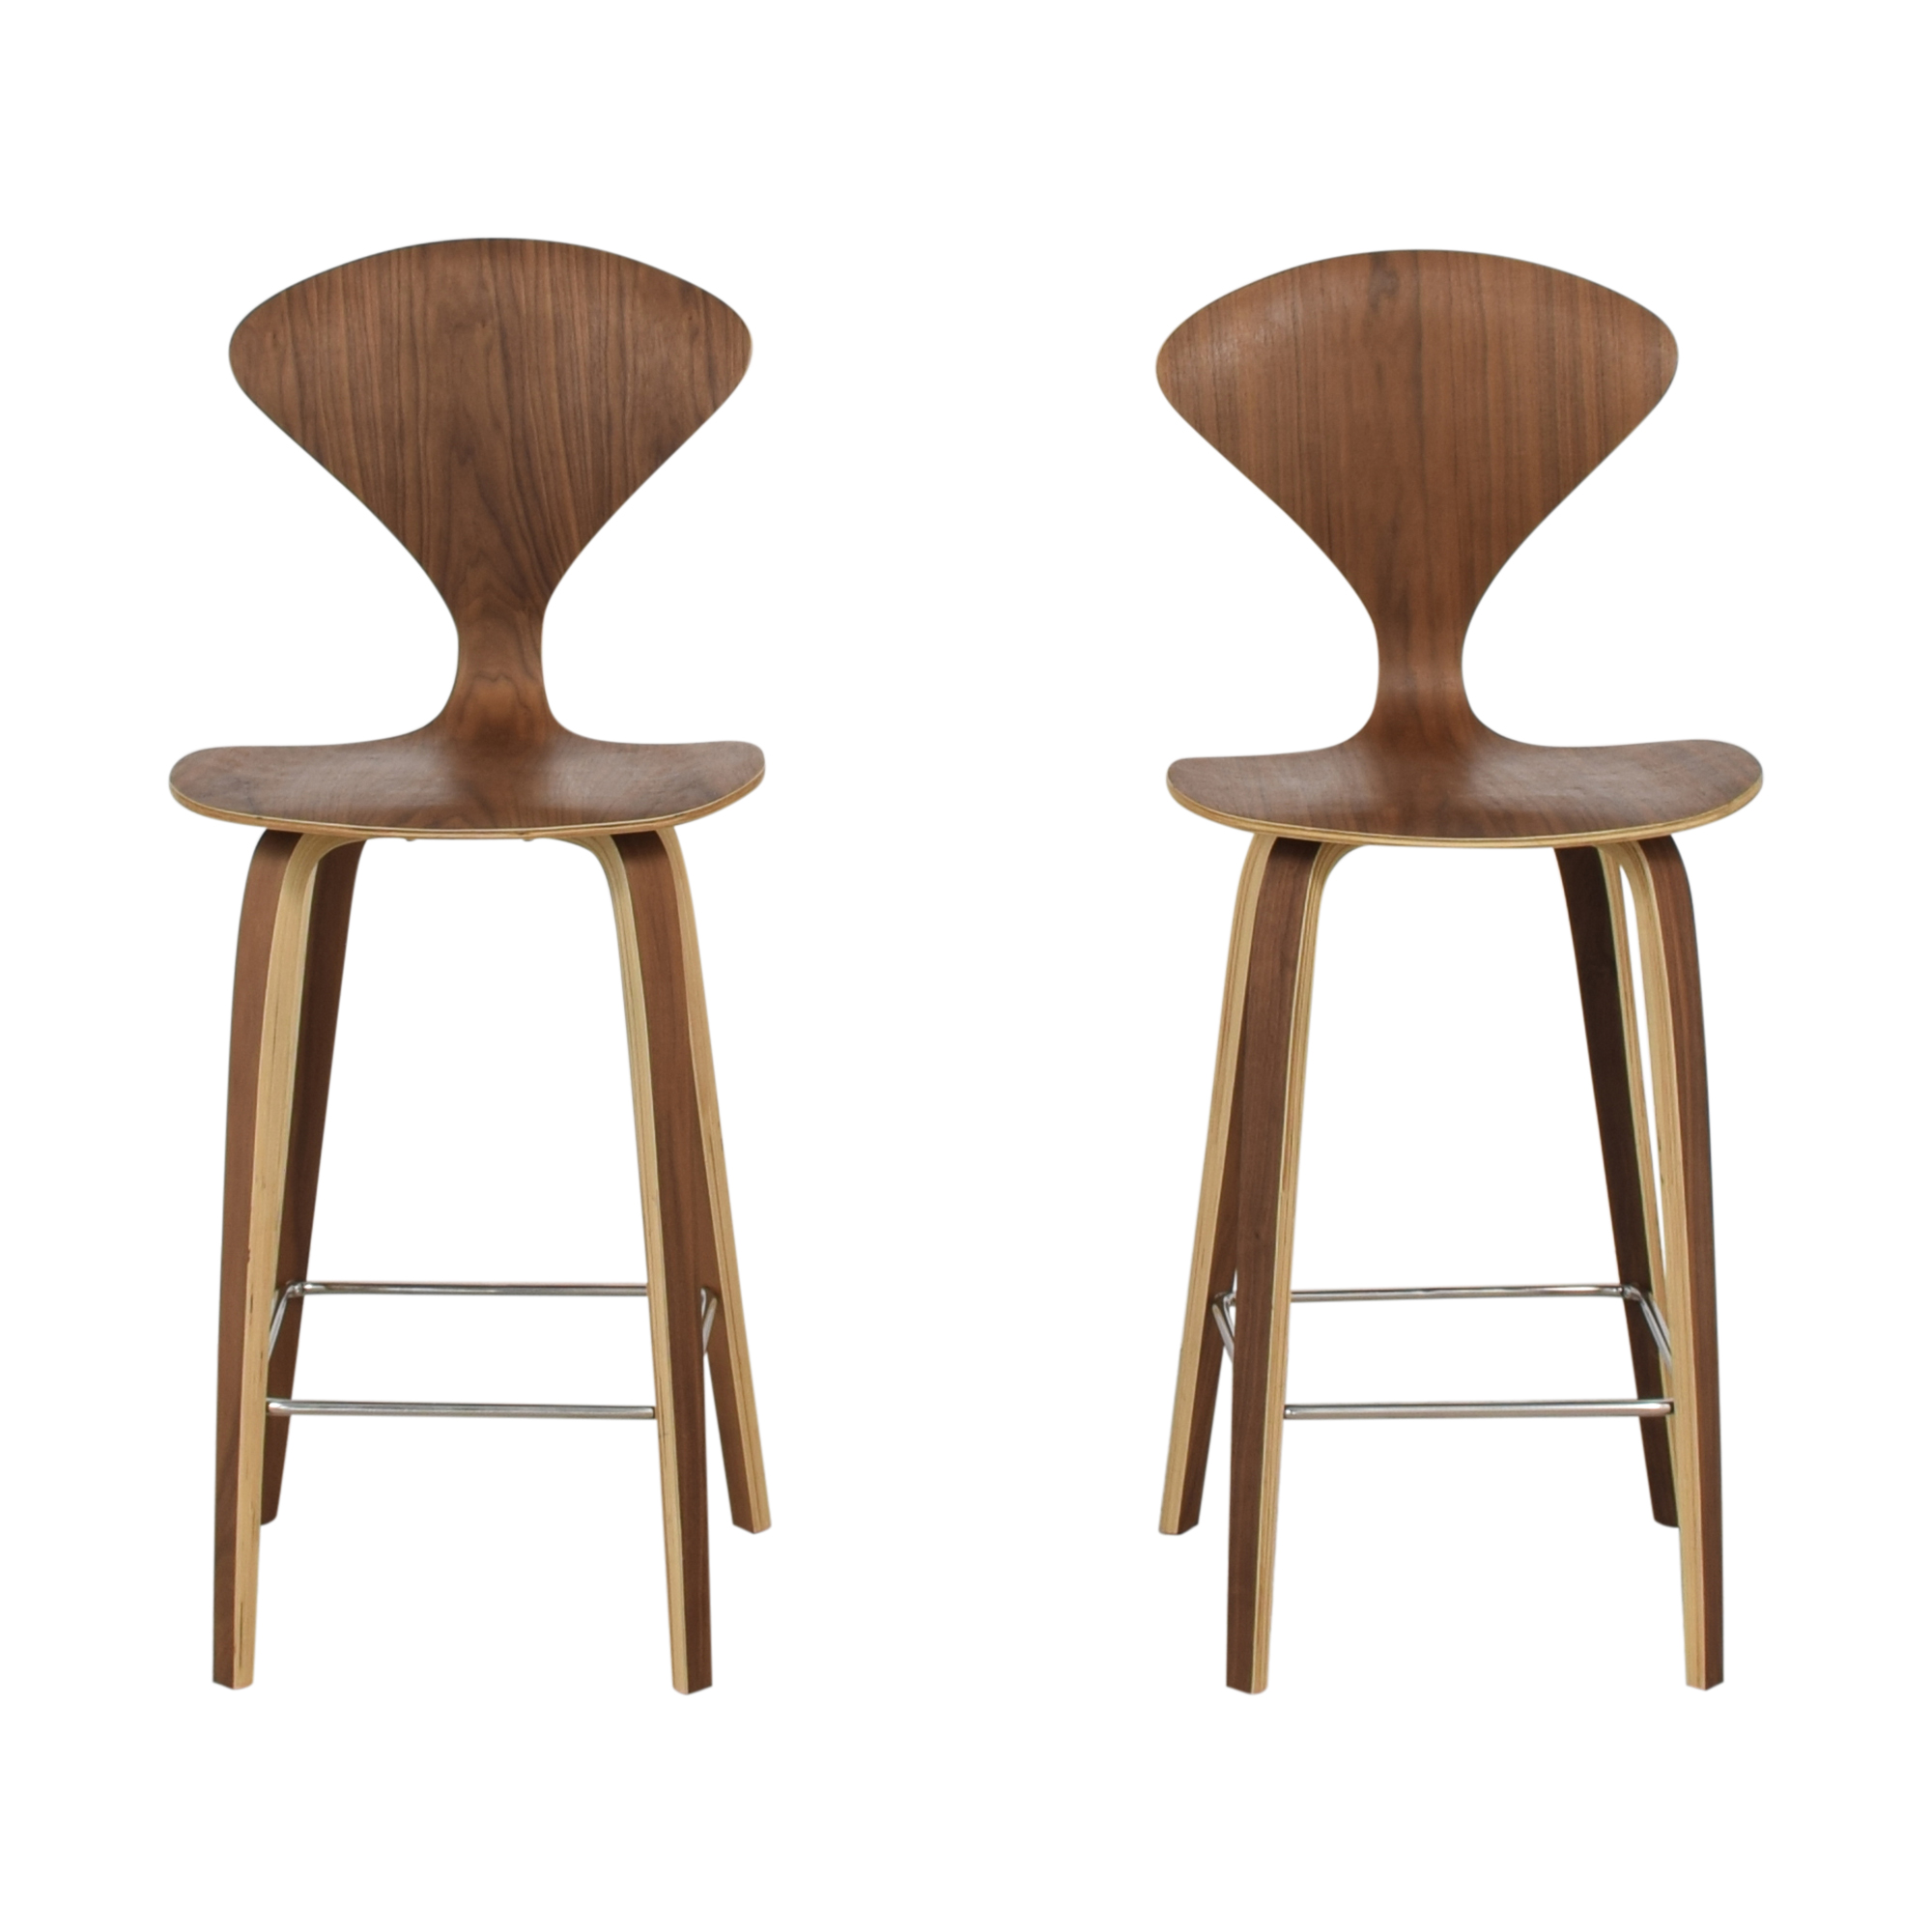 Rove Concepts Rove Concepts Norman Counter Stools discount